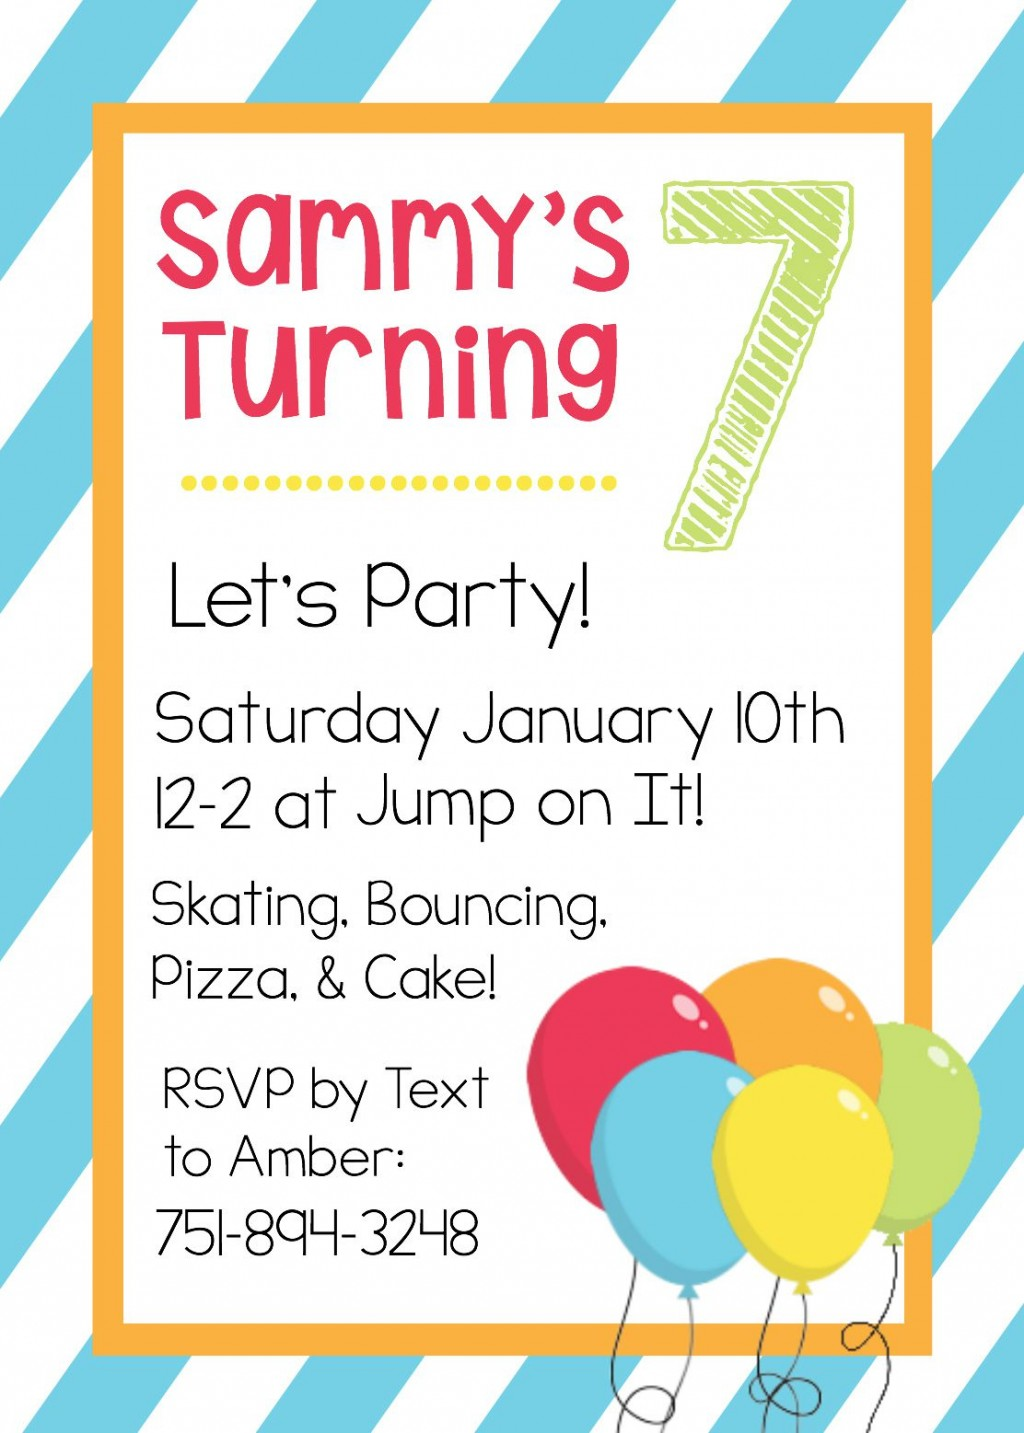 006 Top Free Online Birthday Party Invitation Template Example  Templates MakerLarge